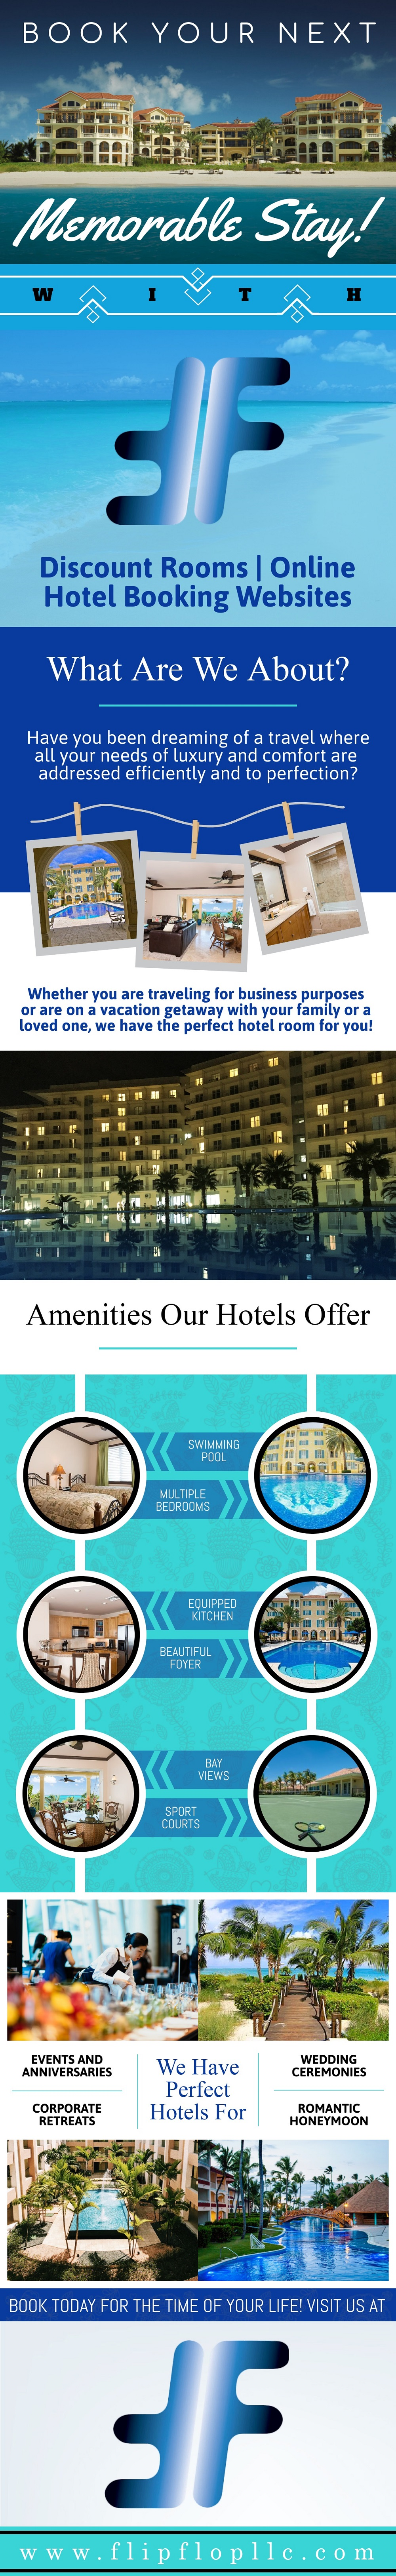 Image showing best site for hotel deals